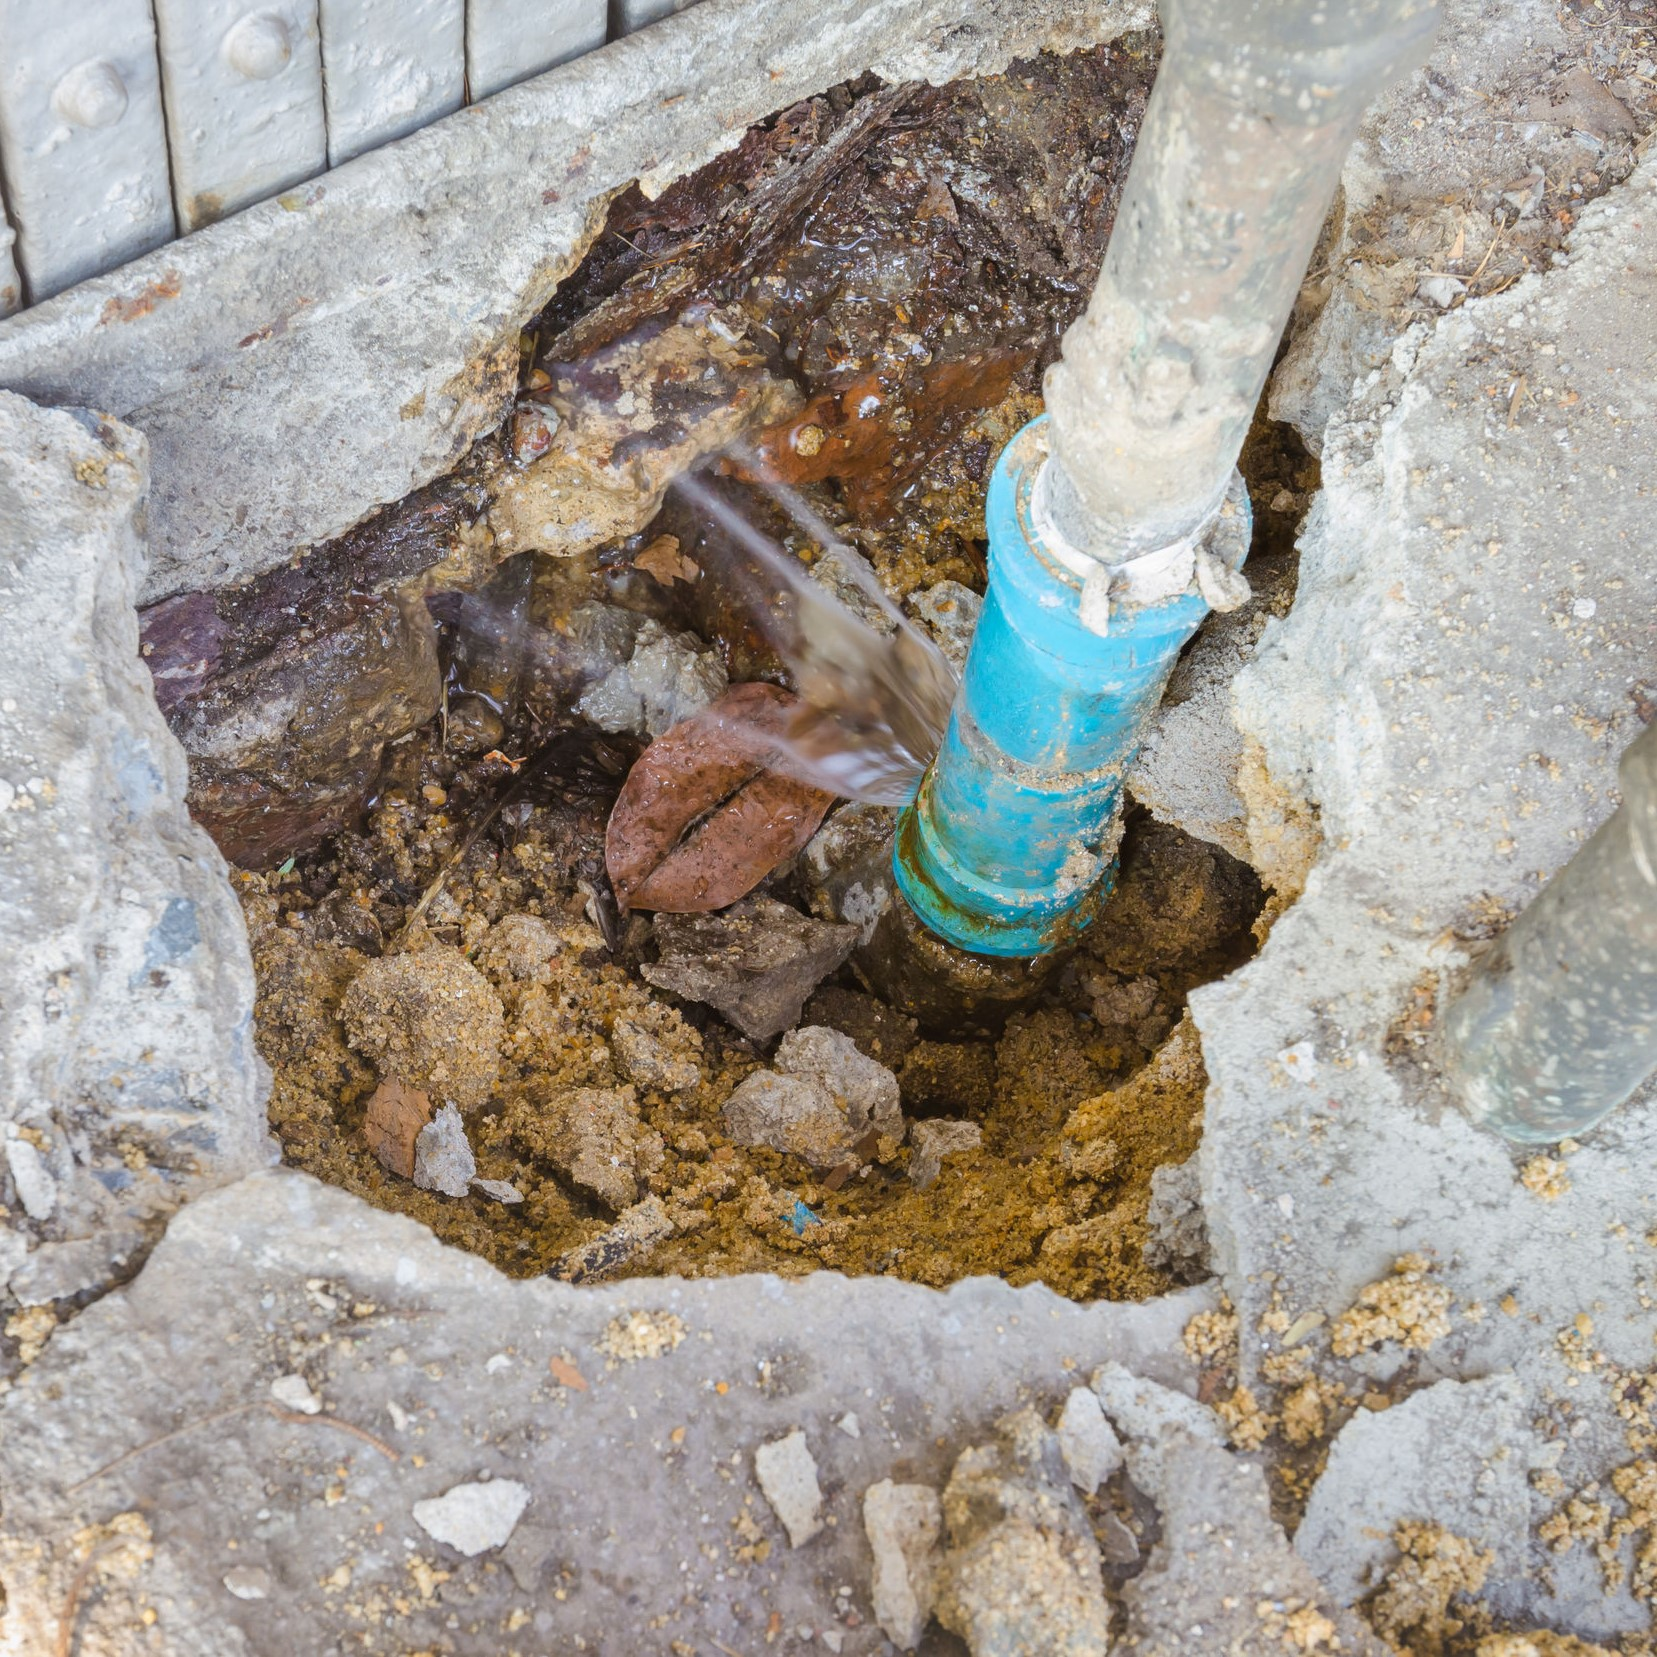 An underground water line that is damaged and needs repairs.